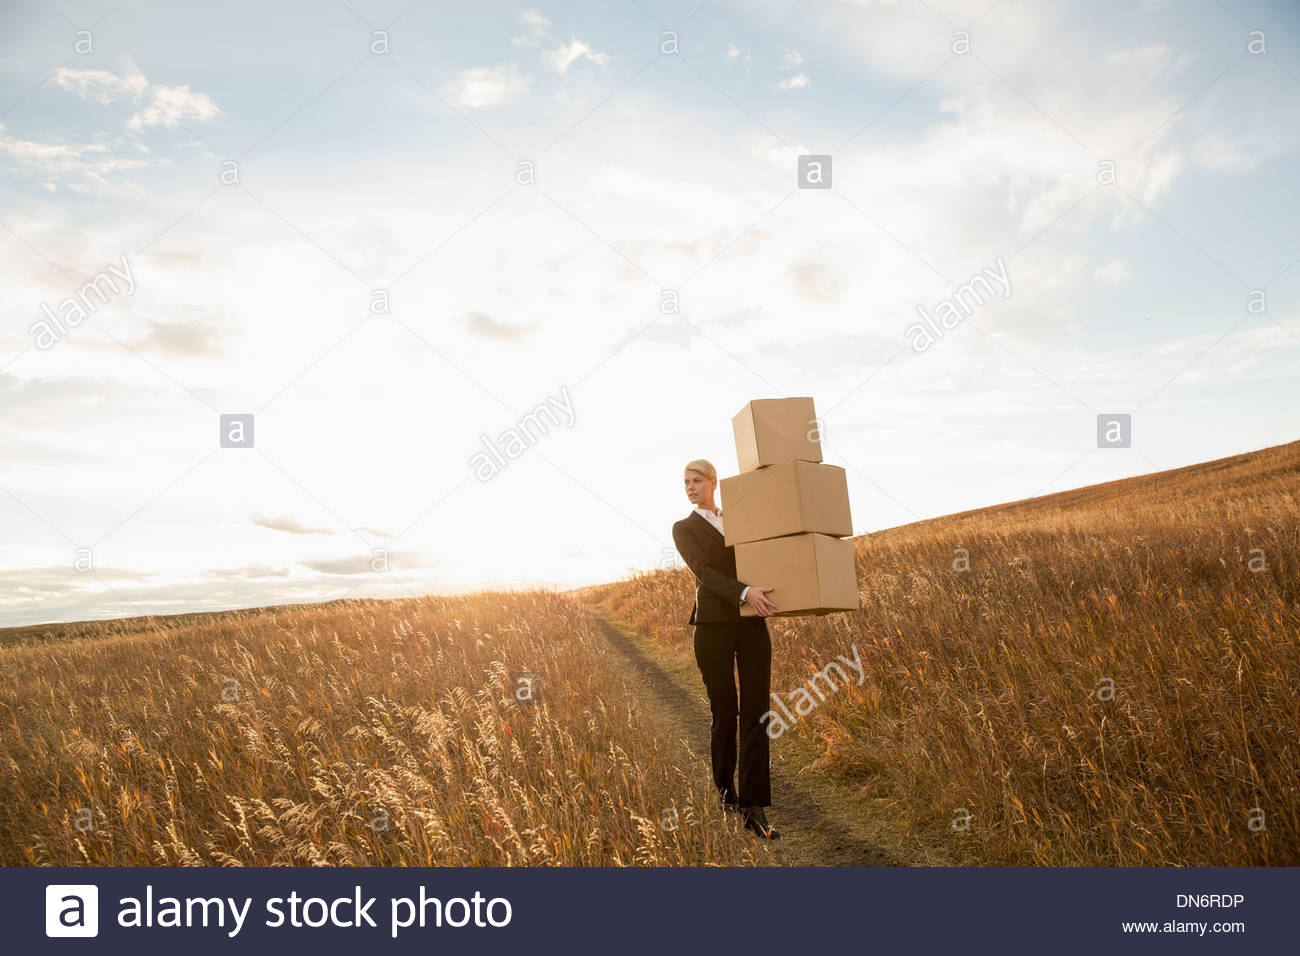 Businesswoman with stacked boxes walking through field - Stock Image